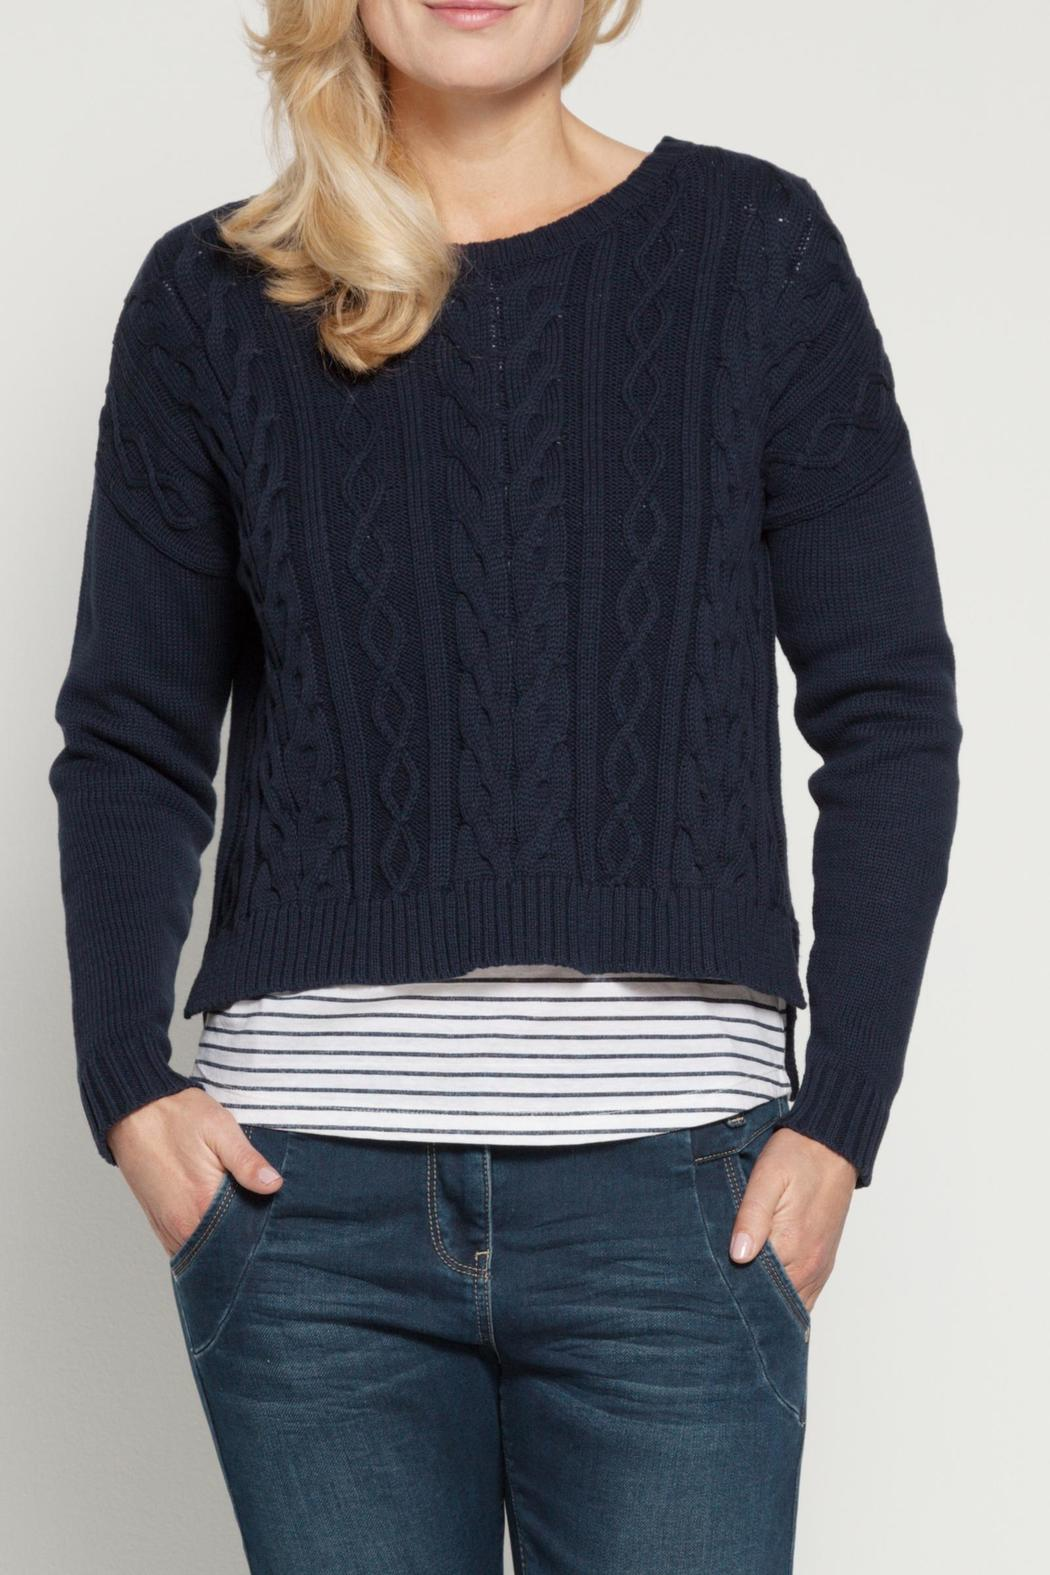 Sandwich Clothing Cropped Cable Sweater from Canada by Moxxi ...